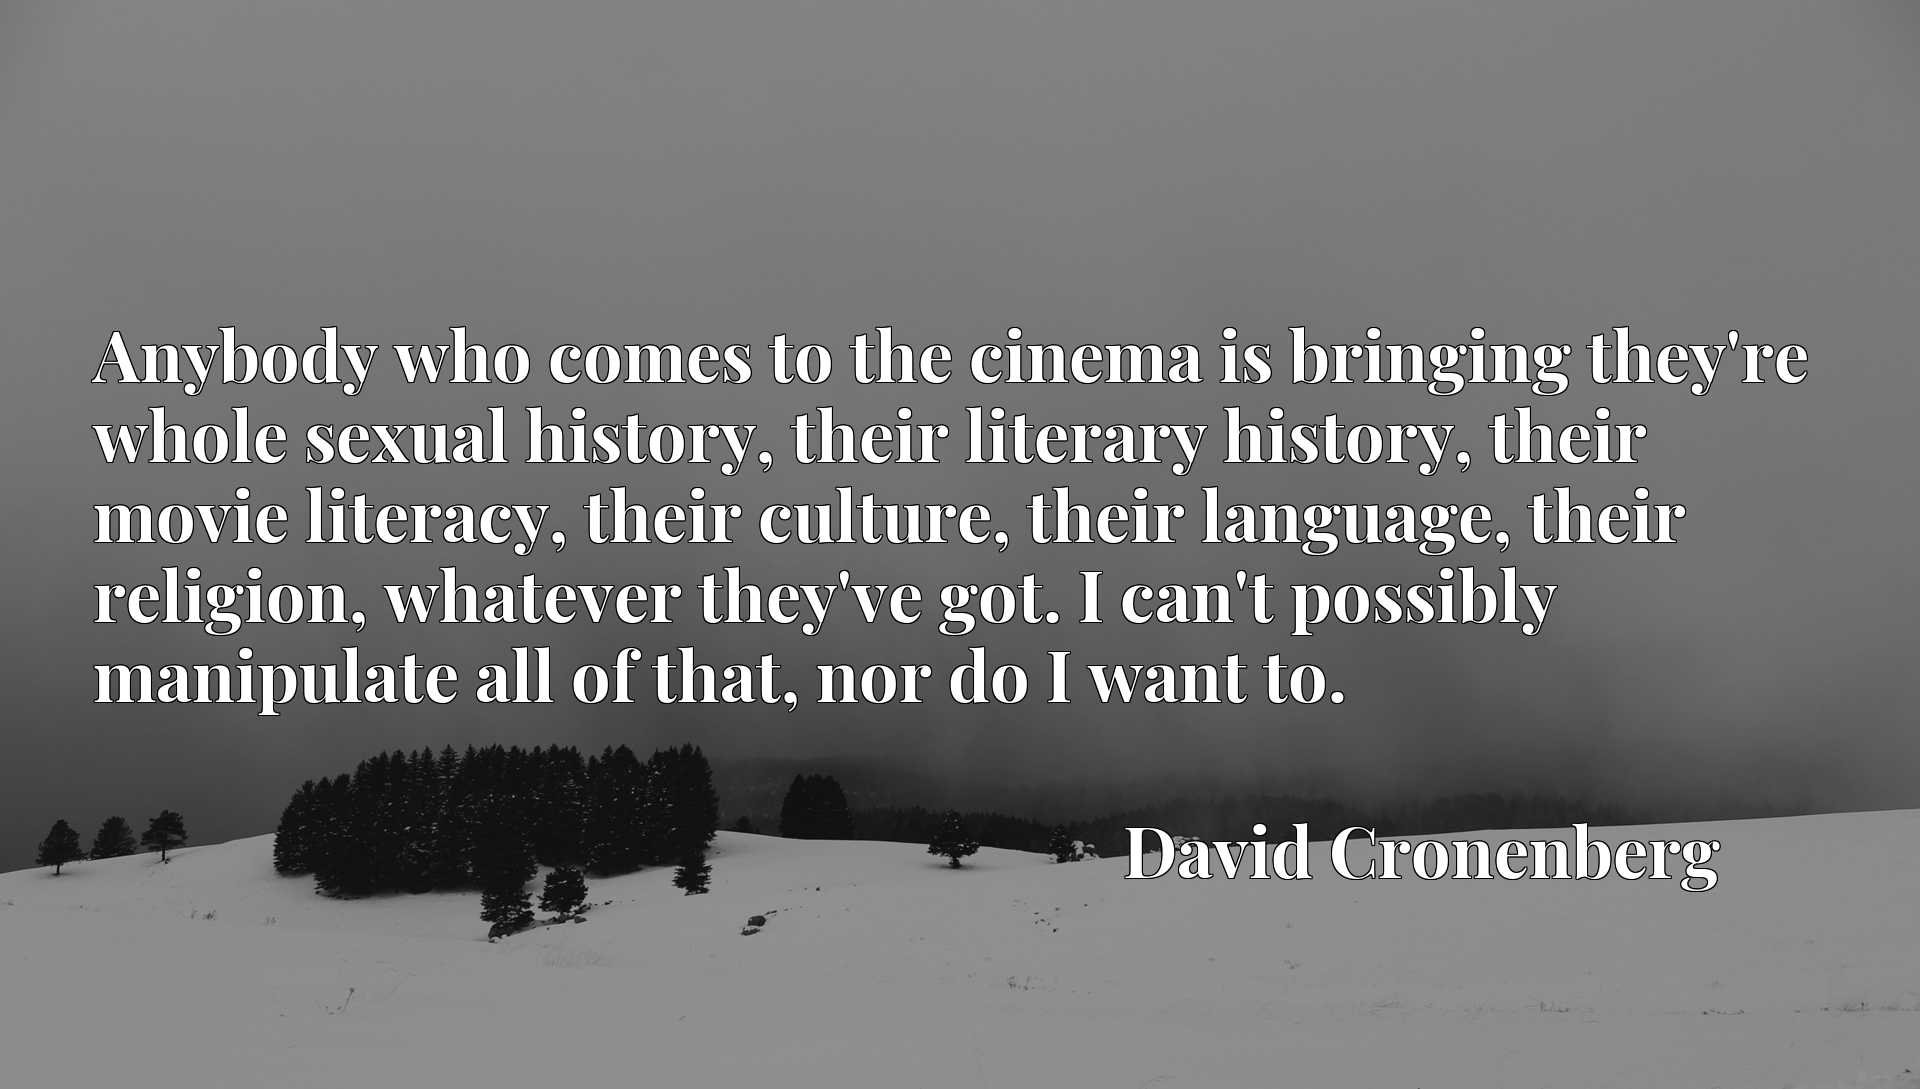 Anybody who comes to the cinema is bringing they're whole sexual history, their literary history, their movie literacy, their culture, their language, their religion, whatever they've got. I can't possibly manipulate all of that, nor do I want to.